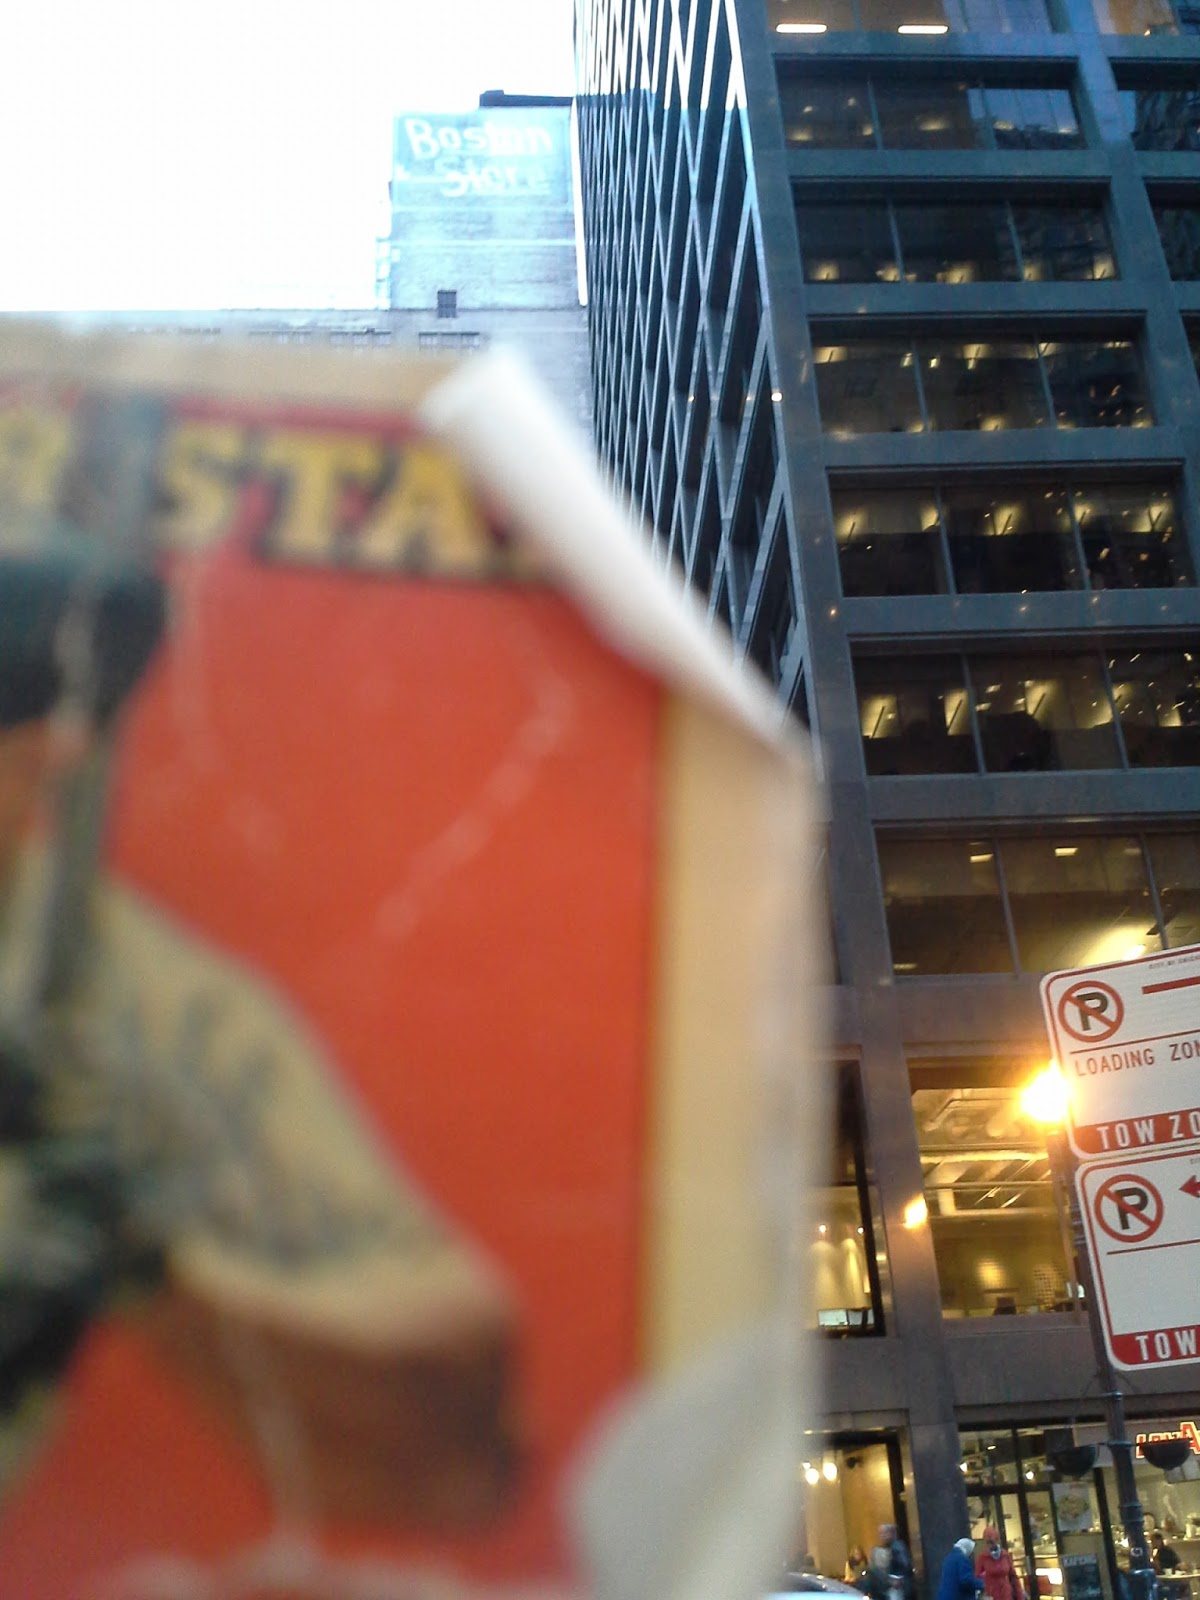 Baseball Cards Come To Life Wallet Card In Chicago Ghost Signs